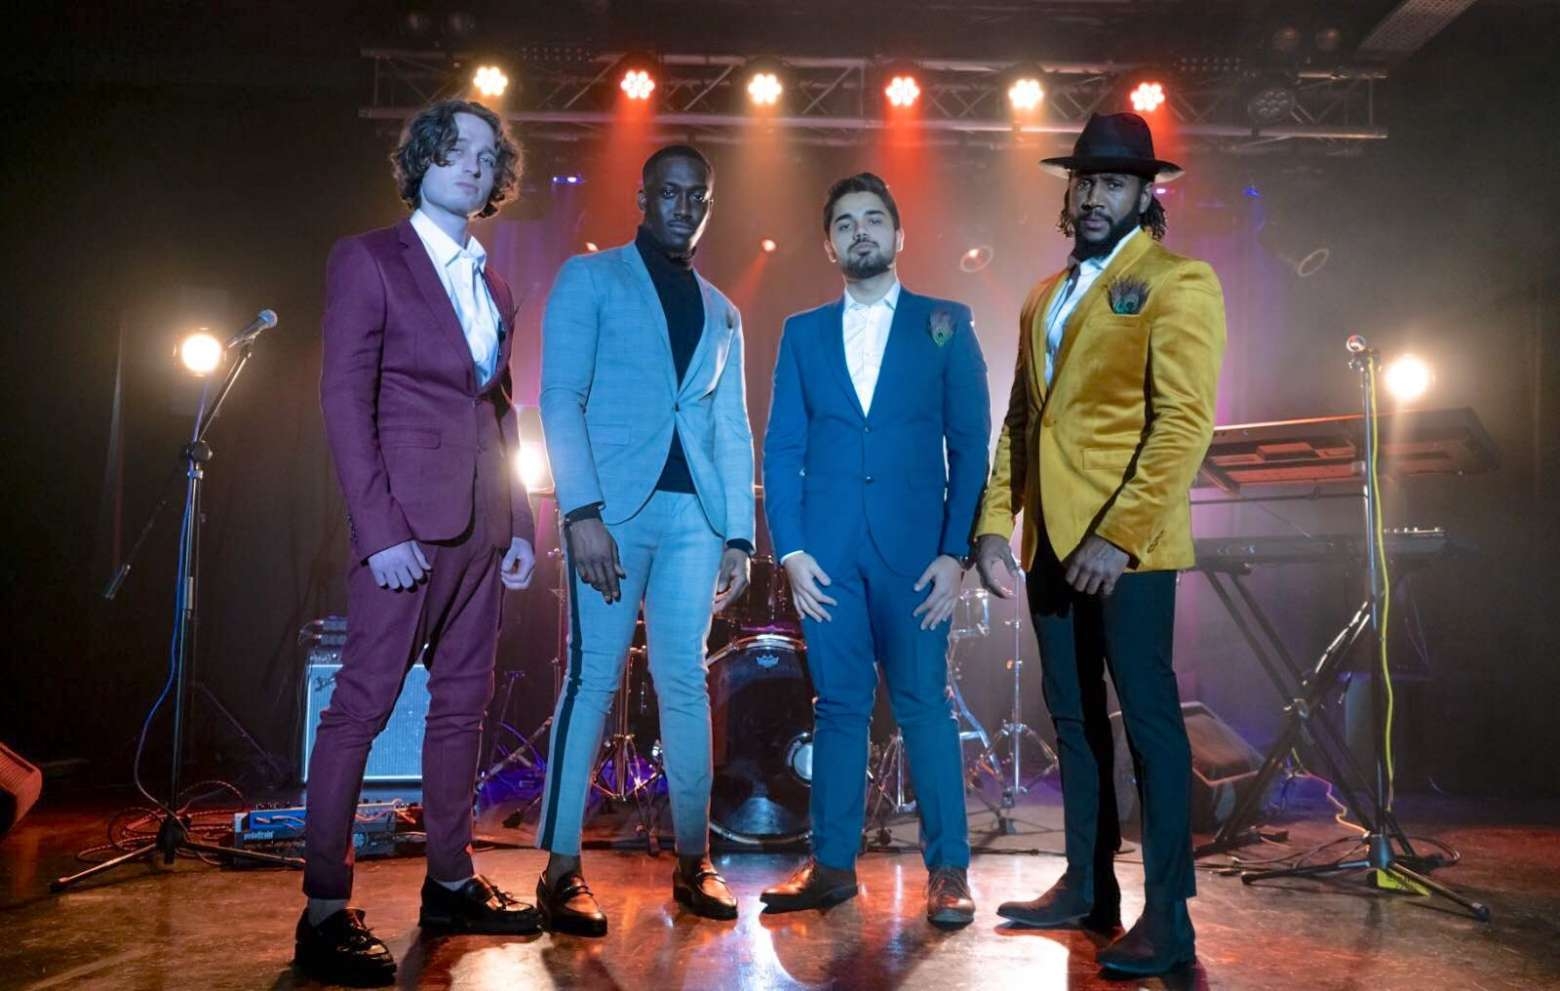 Superstrut | London R&B & soul function band for hire